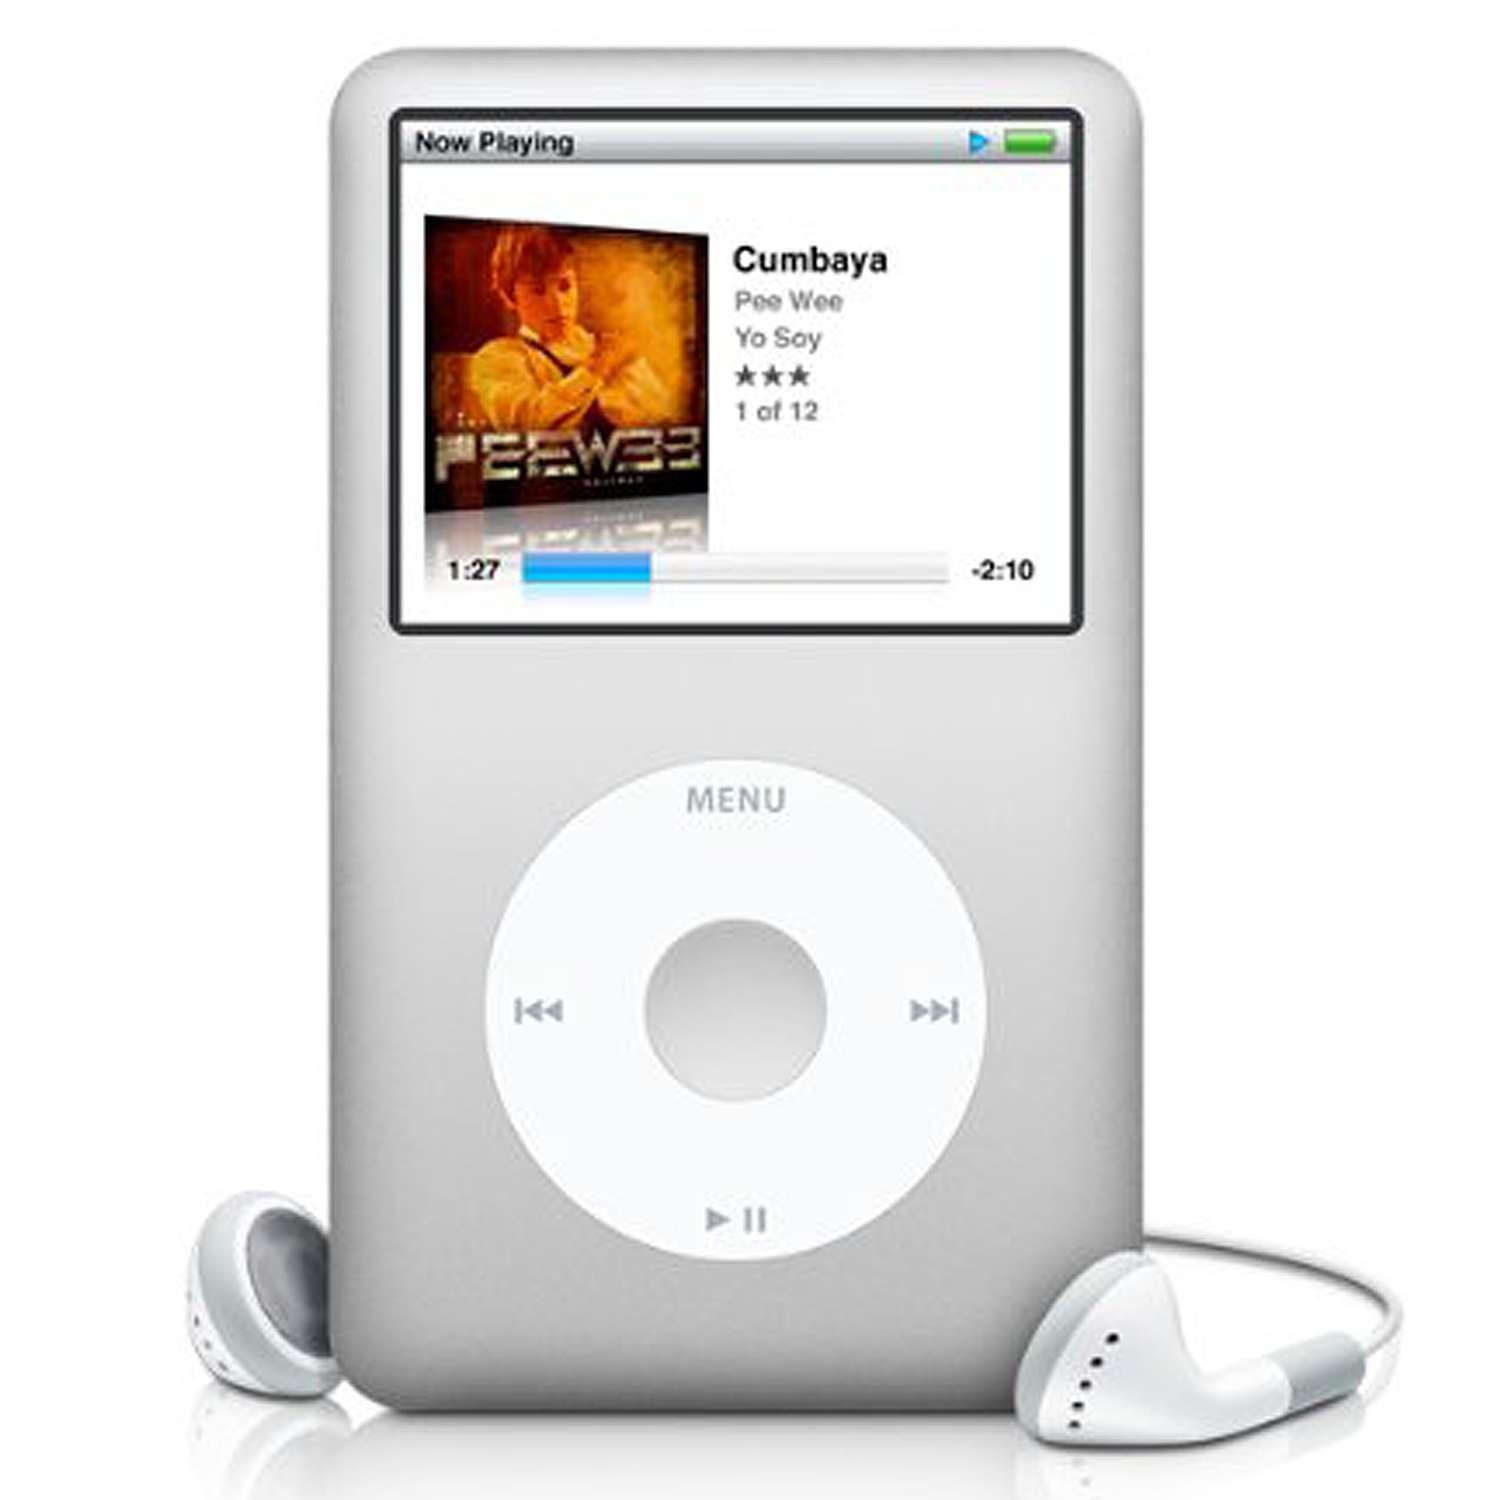 Apple has quietly killed the iPod Classic - ShinyShiny